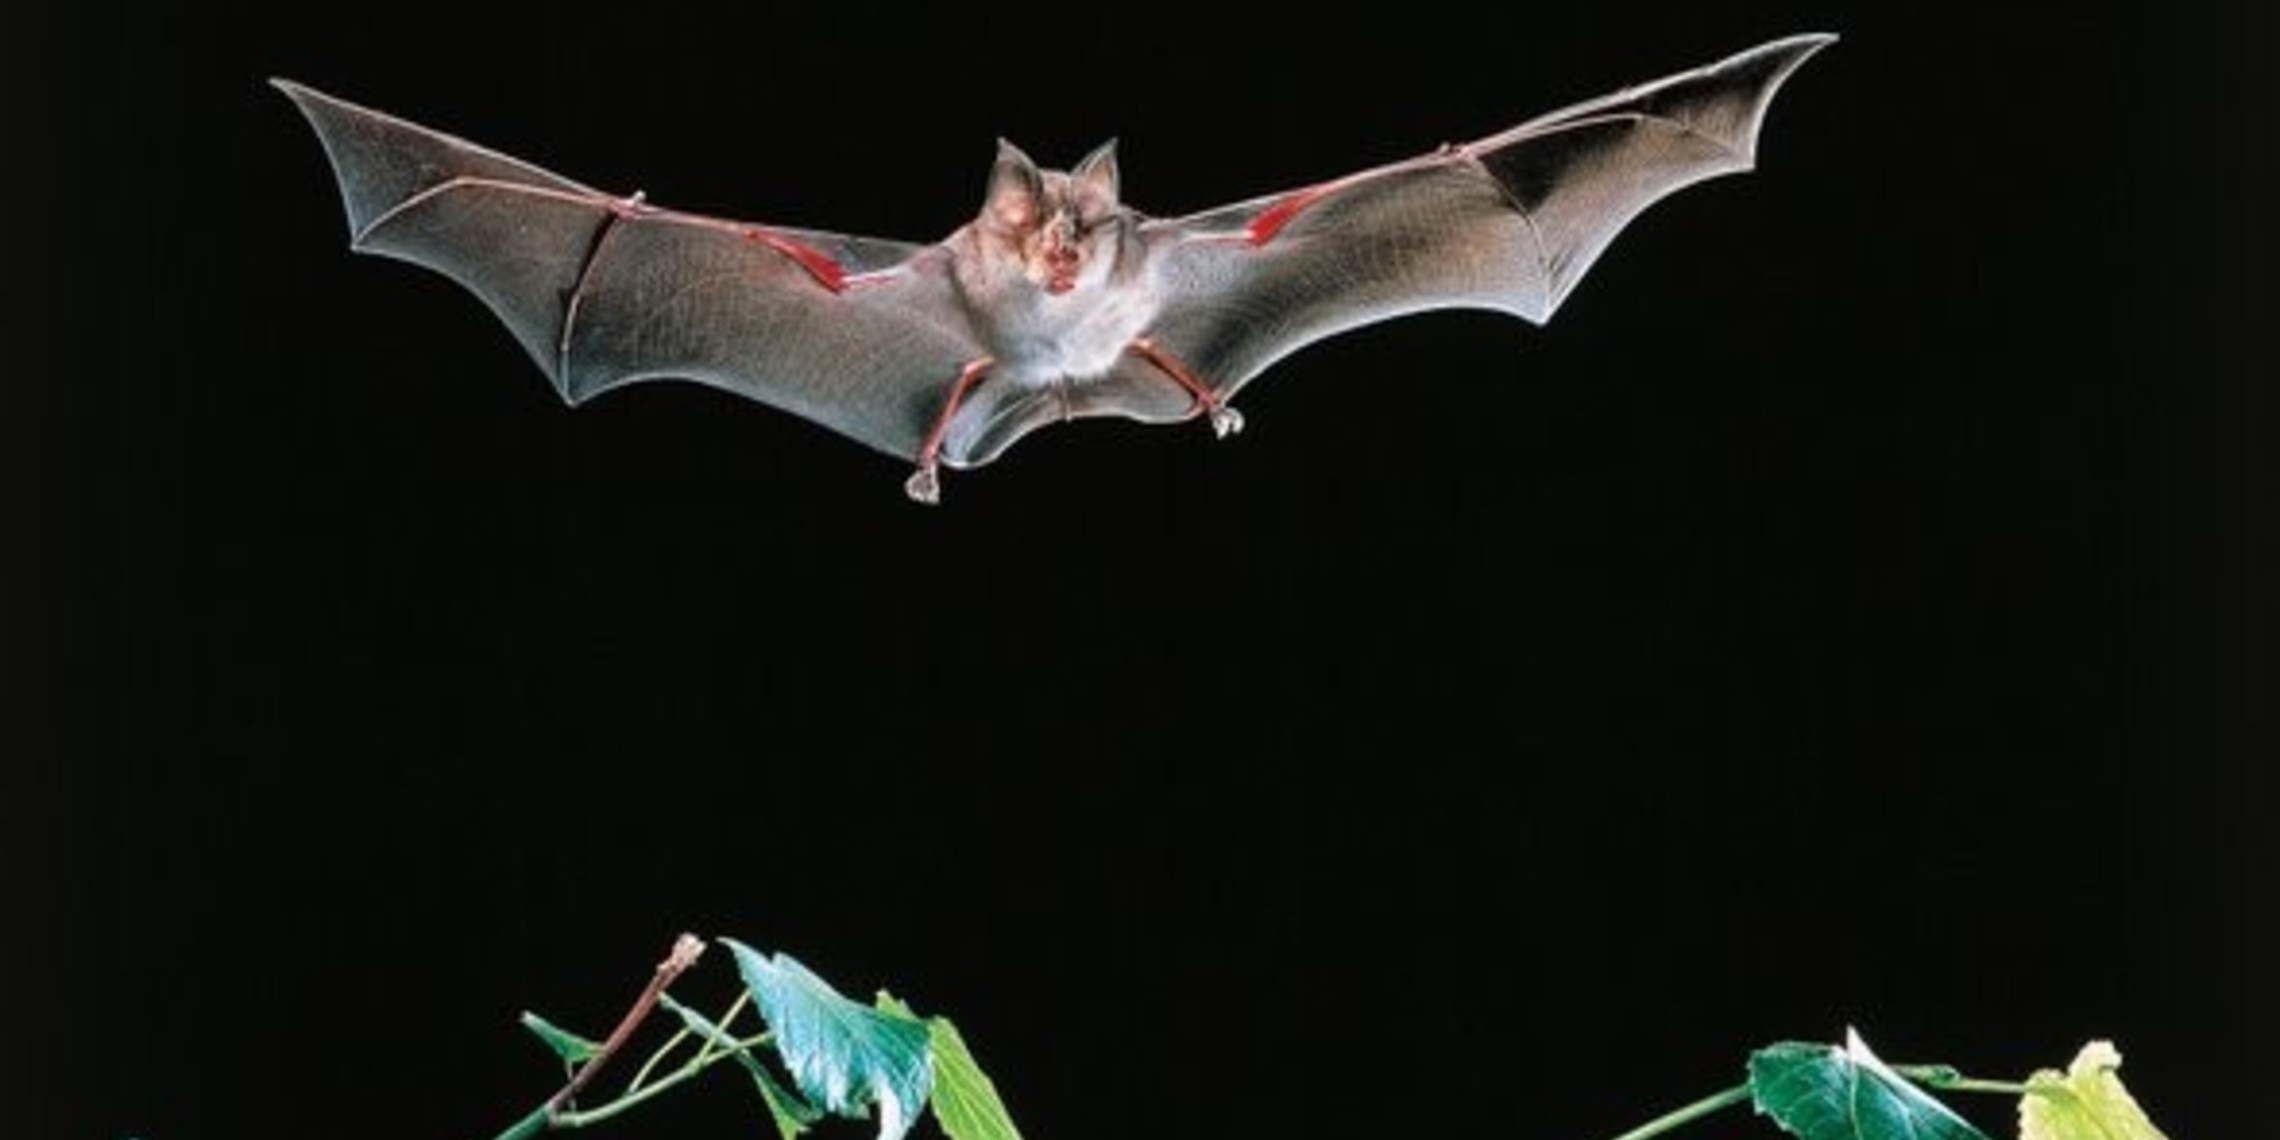 Bat Killings